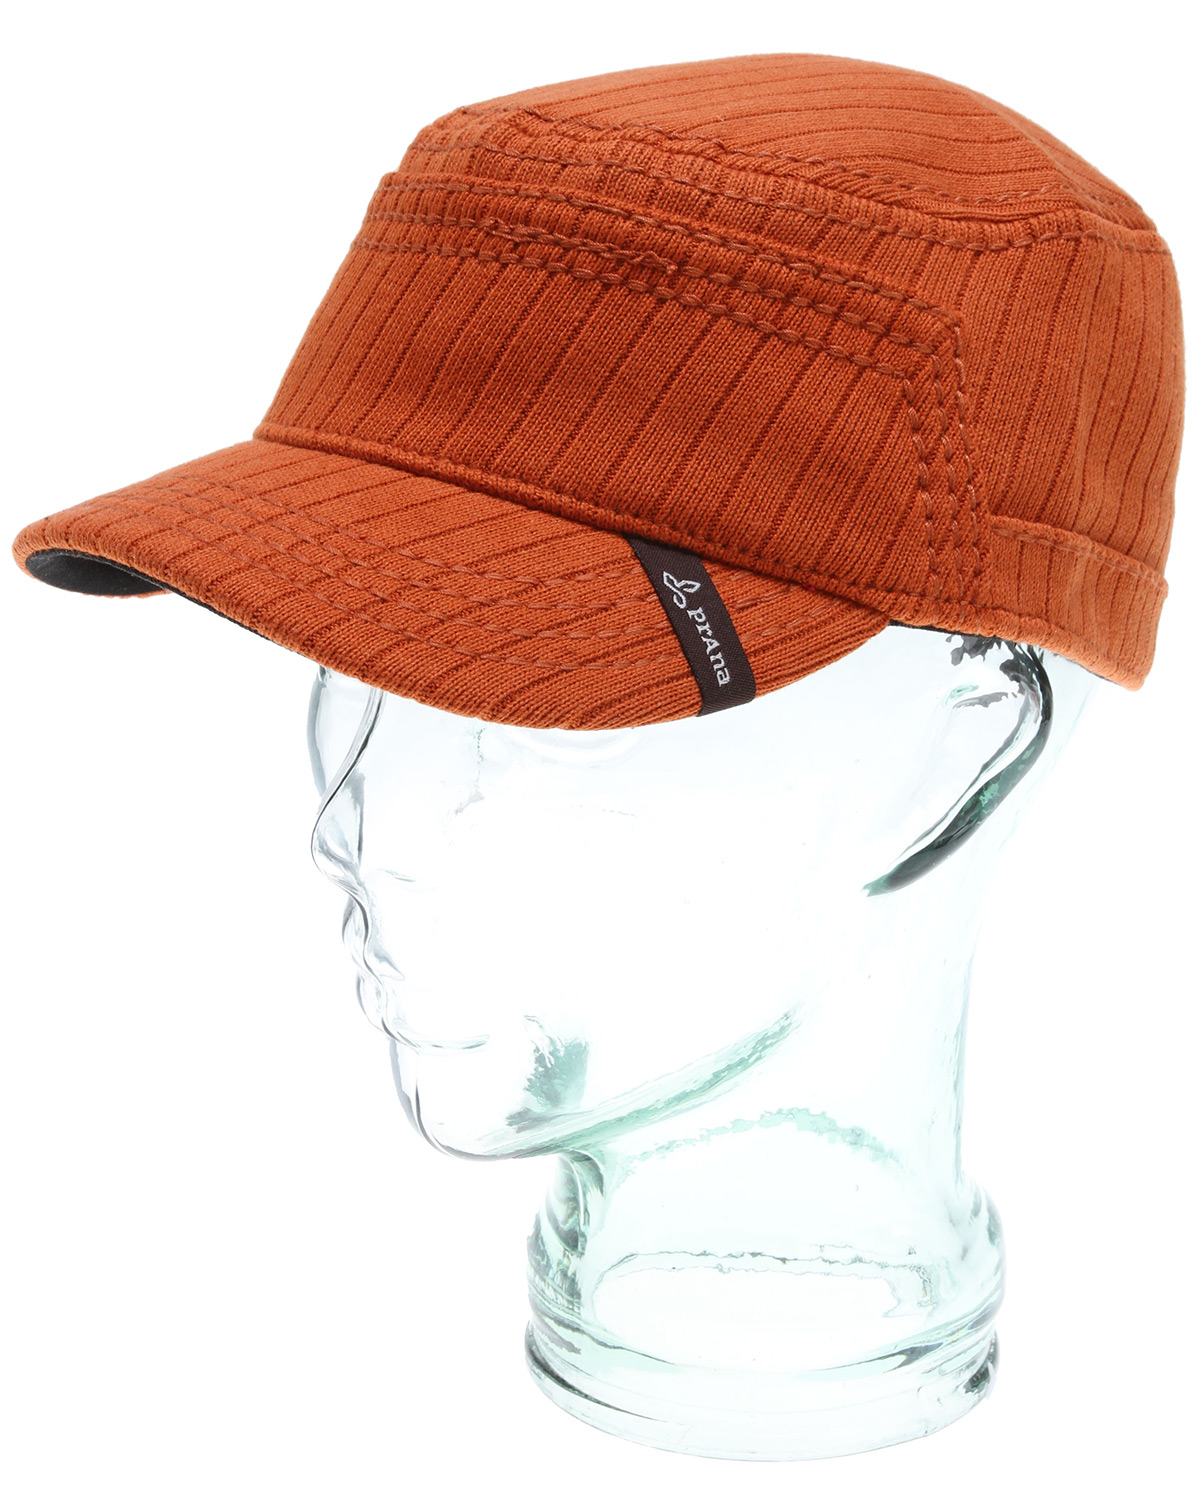 Our take on a traditional cadet hat, done with an attention to detail and quality that will make it a long-lasting staple of your wardrobe.Key Features of the Prana Shae Cadet Hat: Basic cadet style Varigated flatback rib with wide topstitch detailing in rich warm colors Standard Fit 100% Cotton - $21.95